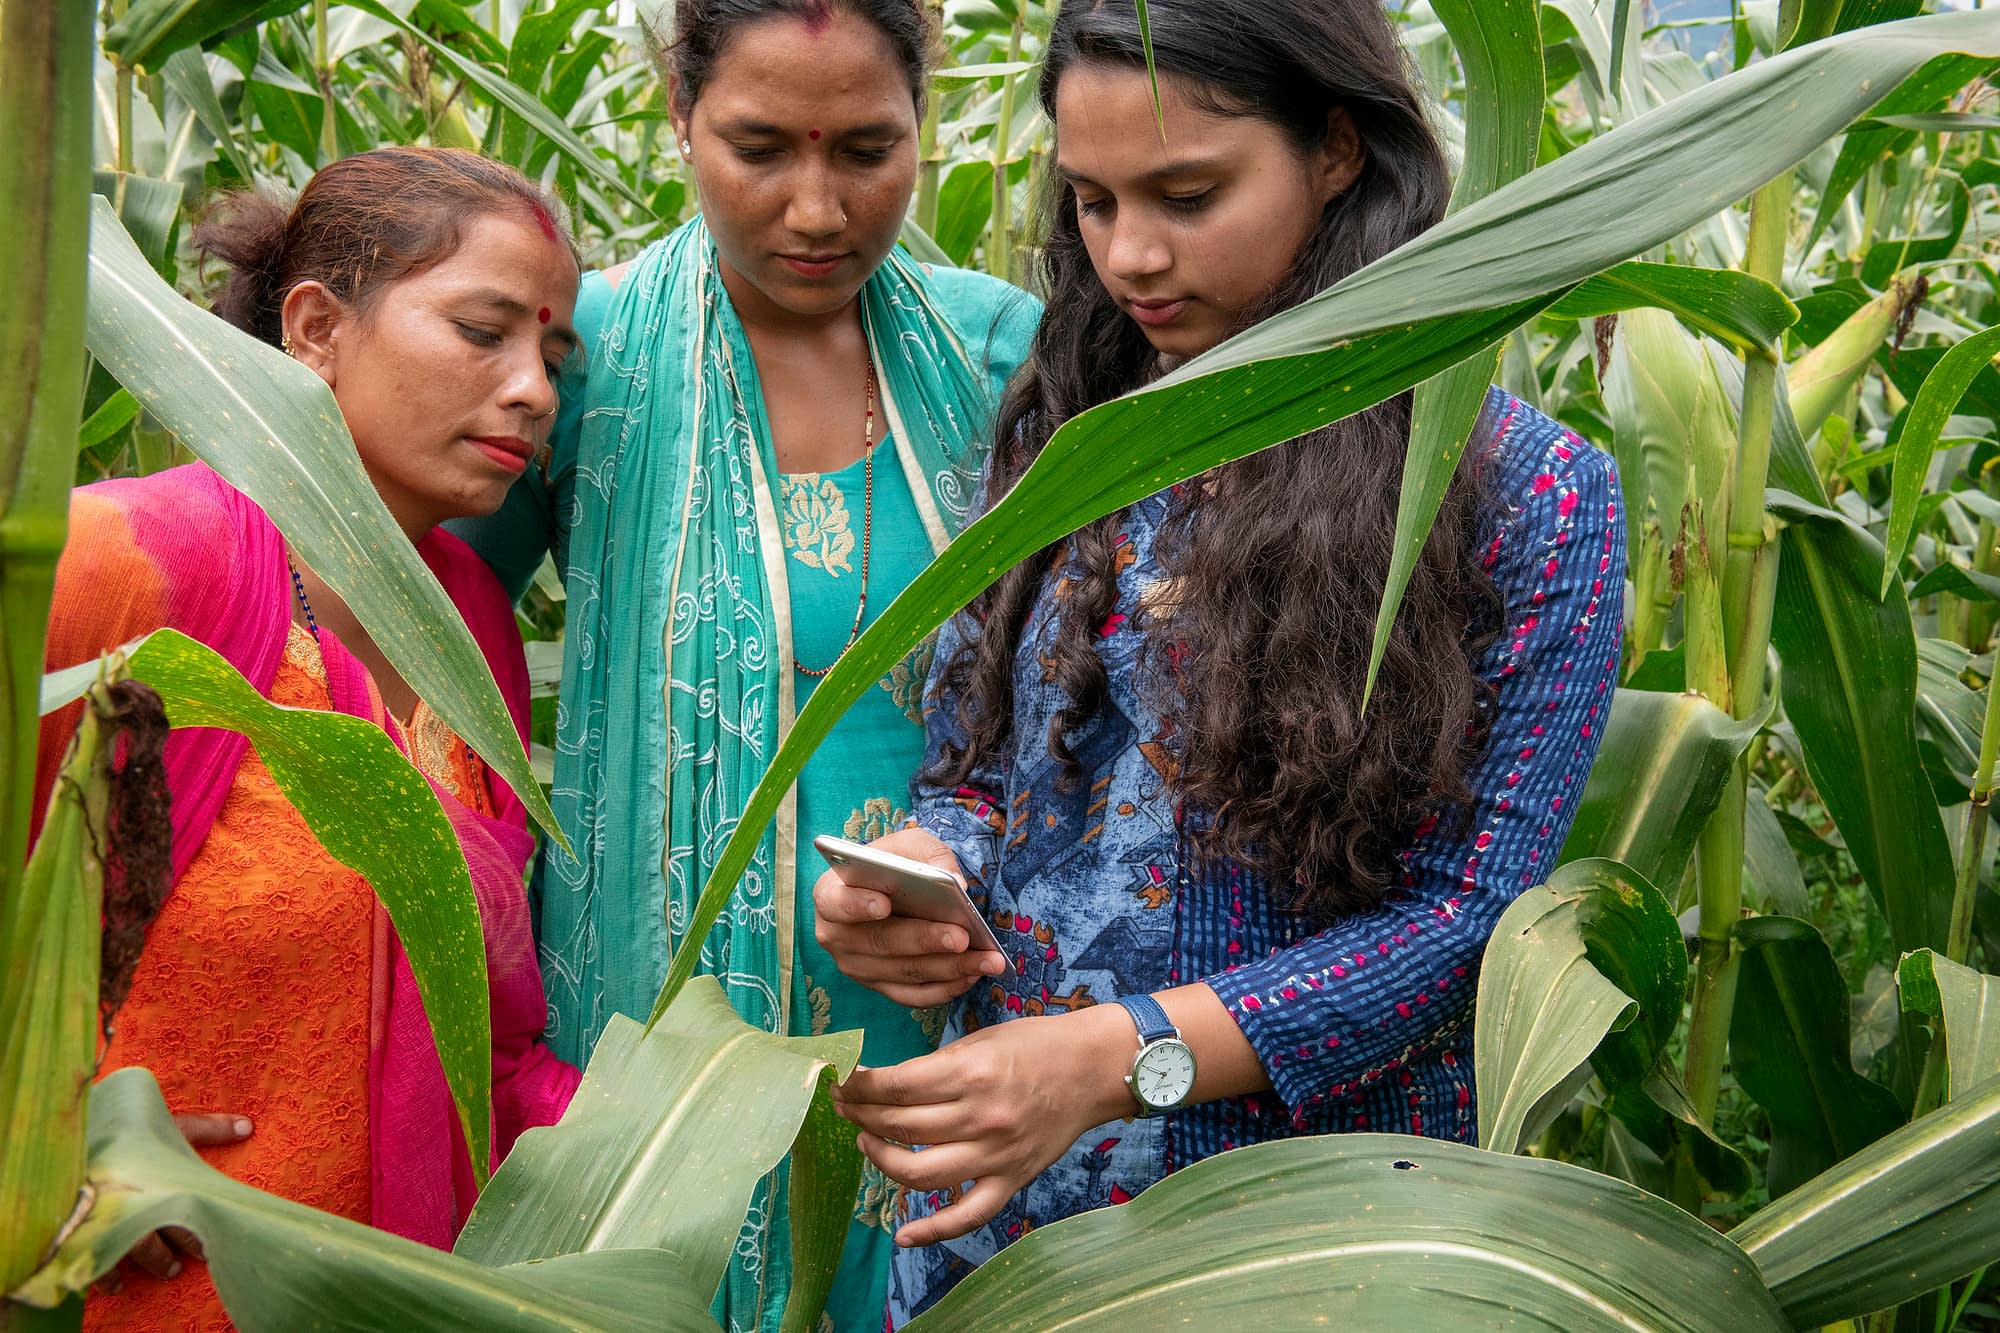 A researcher from the International Maize and Wheat Improvement Center (CIMMYT) demonstrates the use of a farming app in the field. (Photo: C. De Bode/CGIAR)